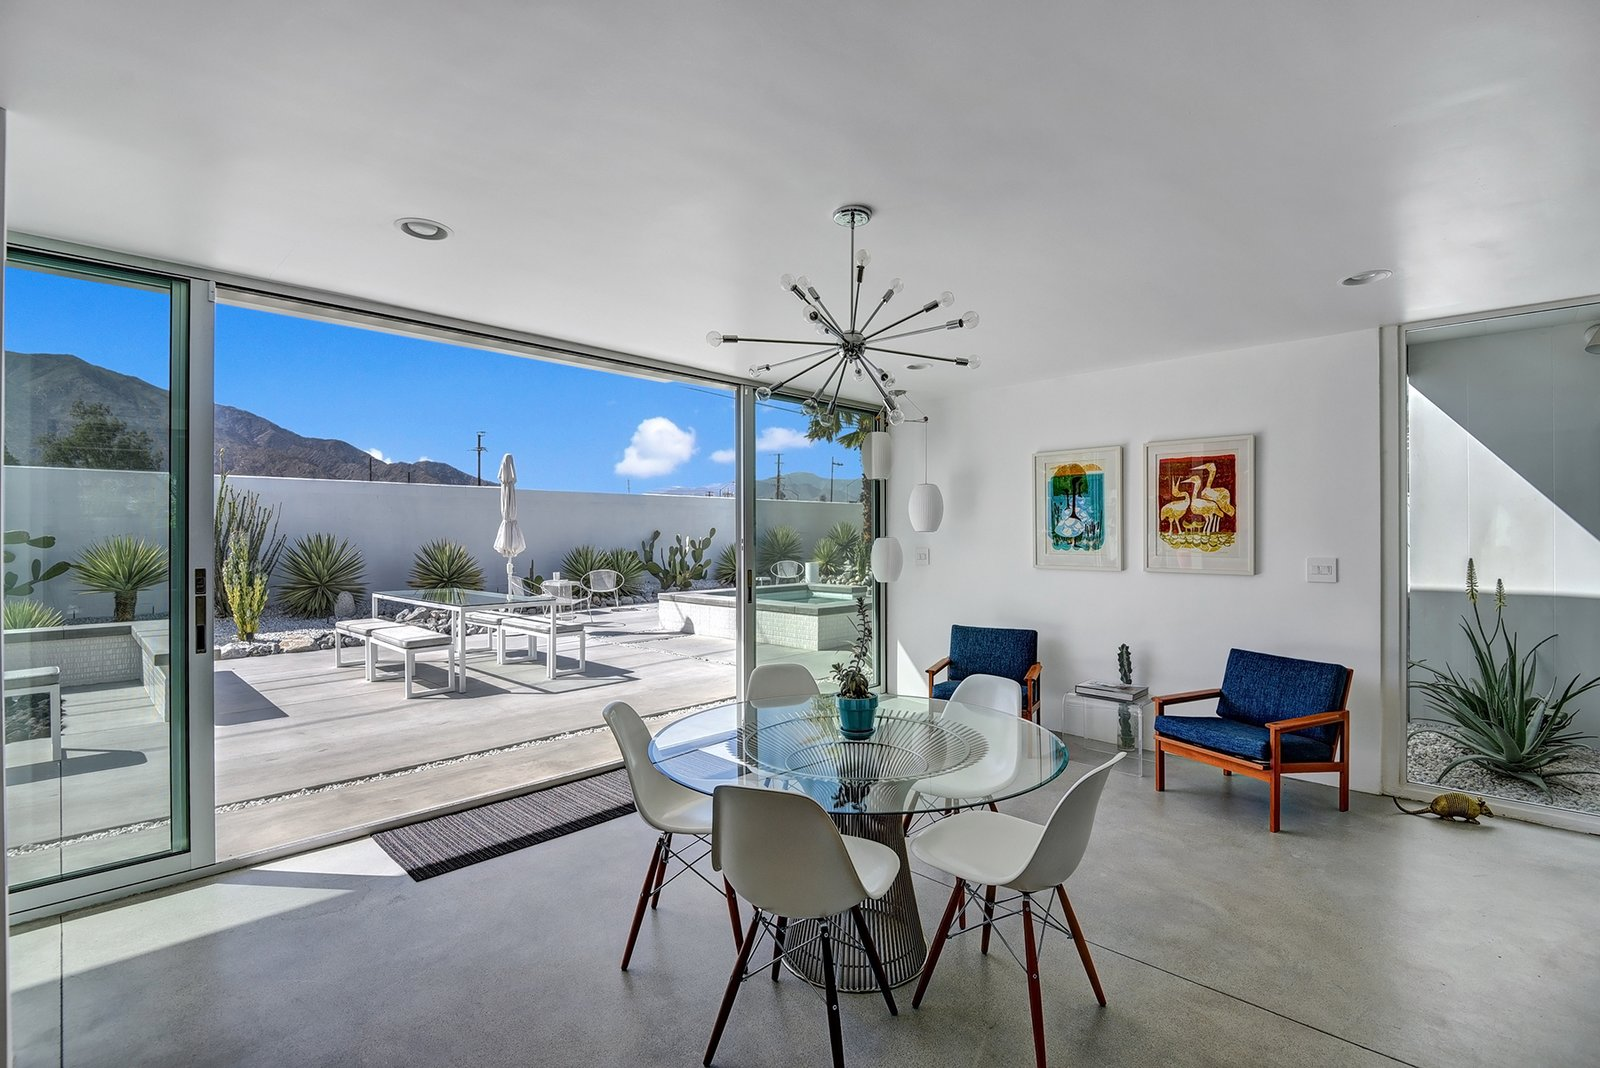 The 2014 remodel increased light into the home by opening the floor plan.